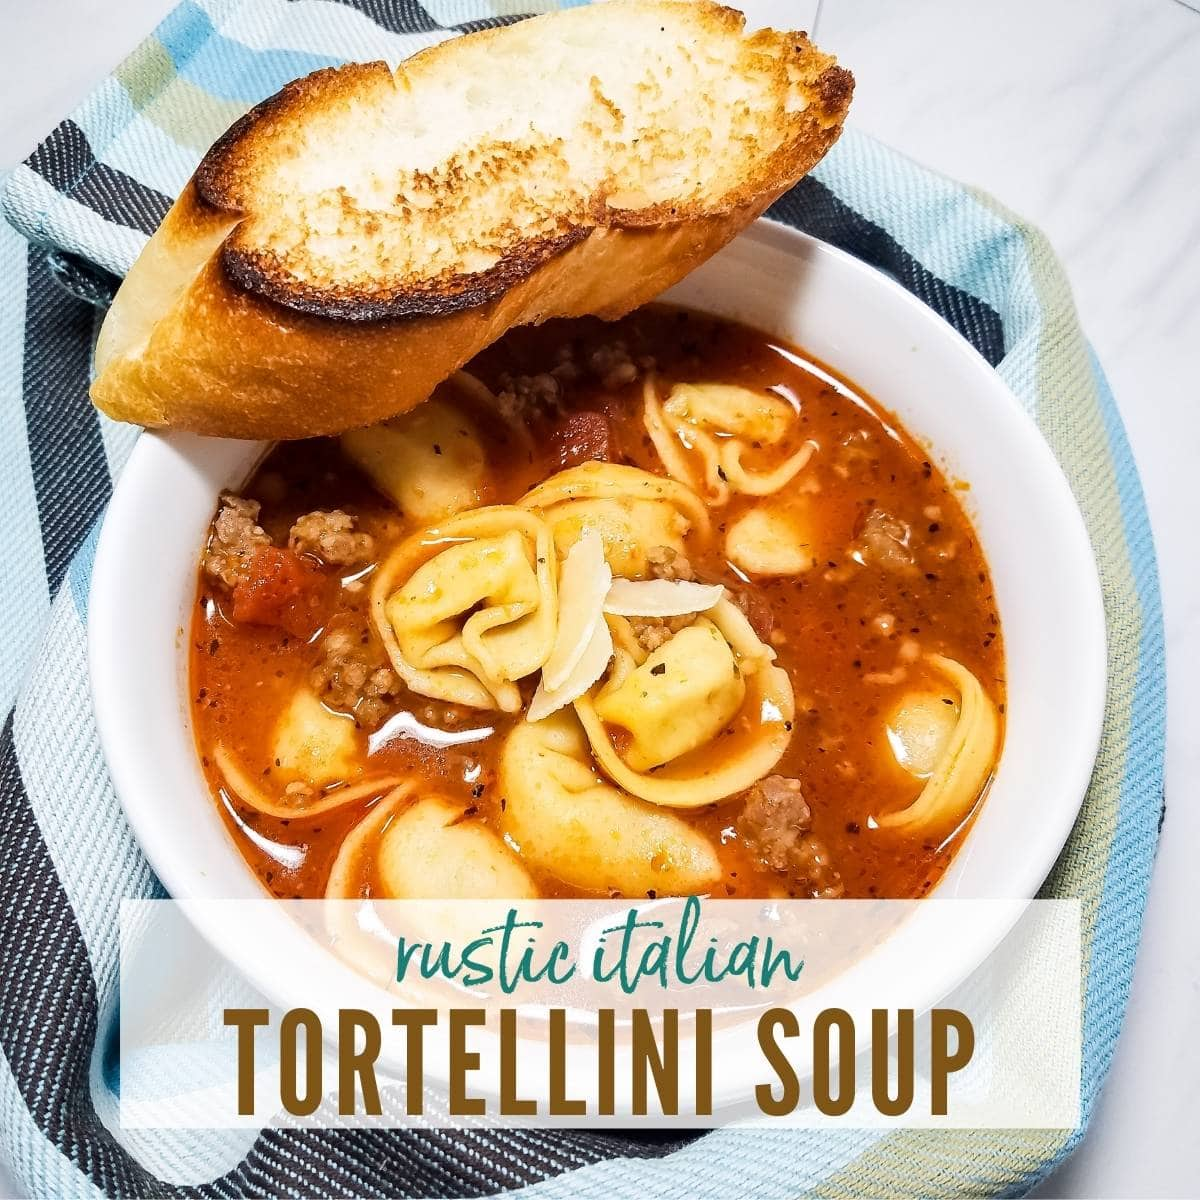 White bowl filled with tortellini soup & a slice of bread with striped towel and graphic overlay.